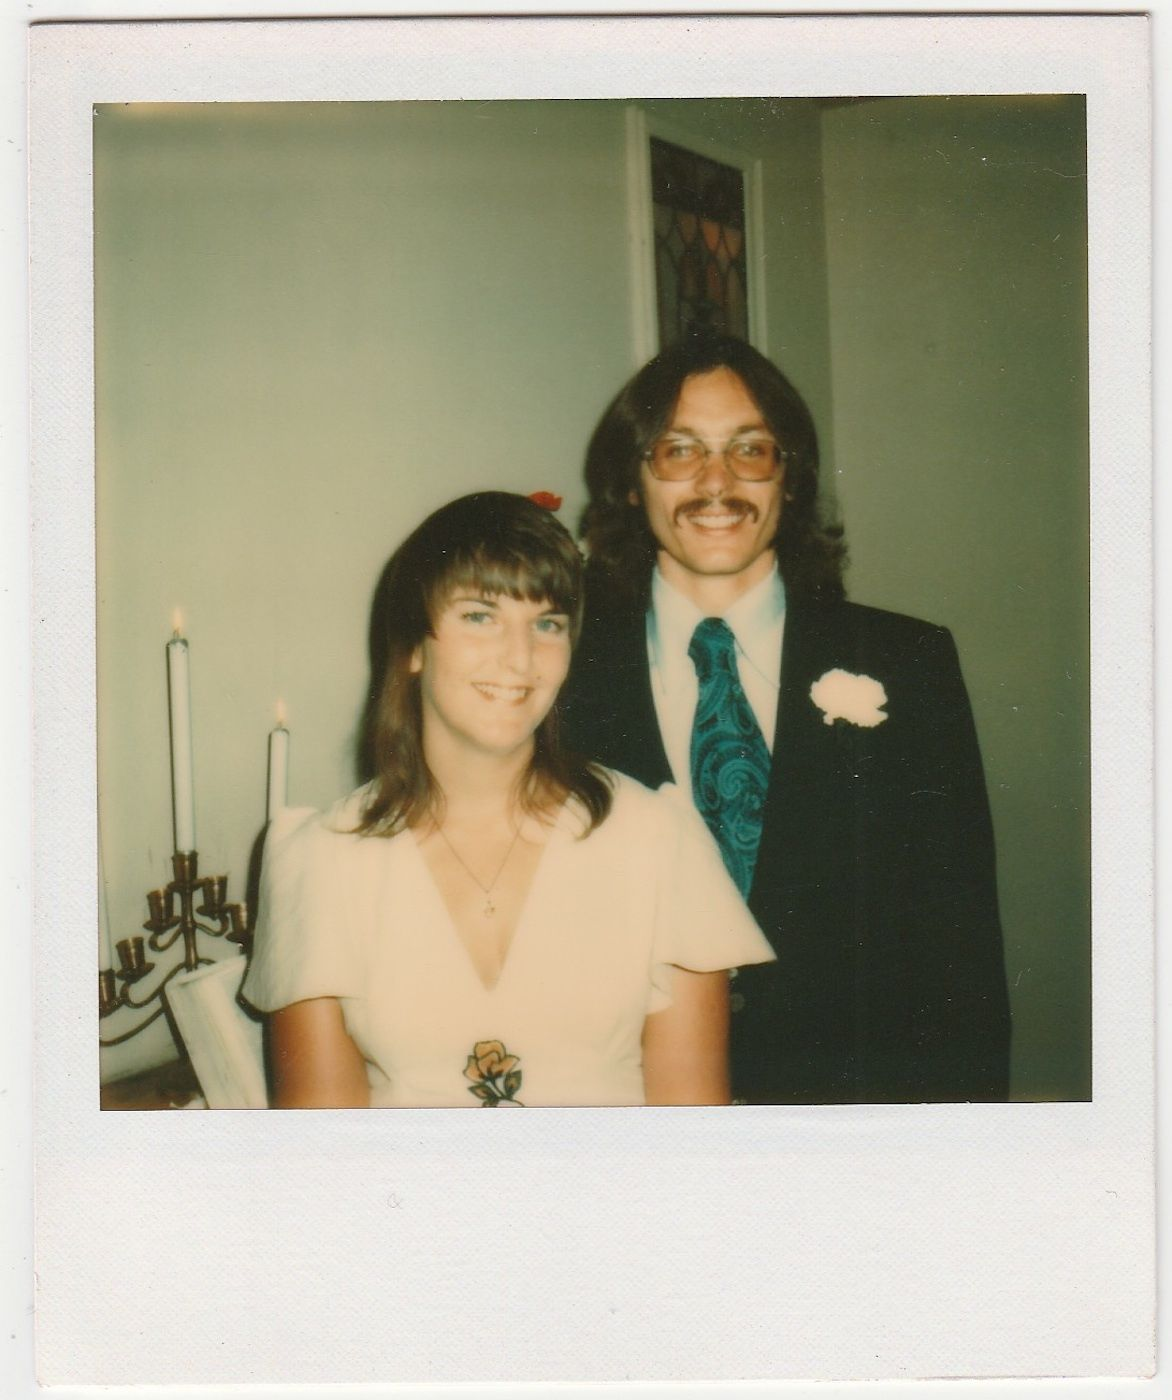 70 Interesting Vintage Polaroid Snaps Of Weddings In The